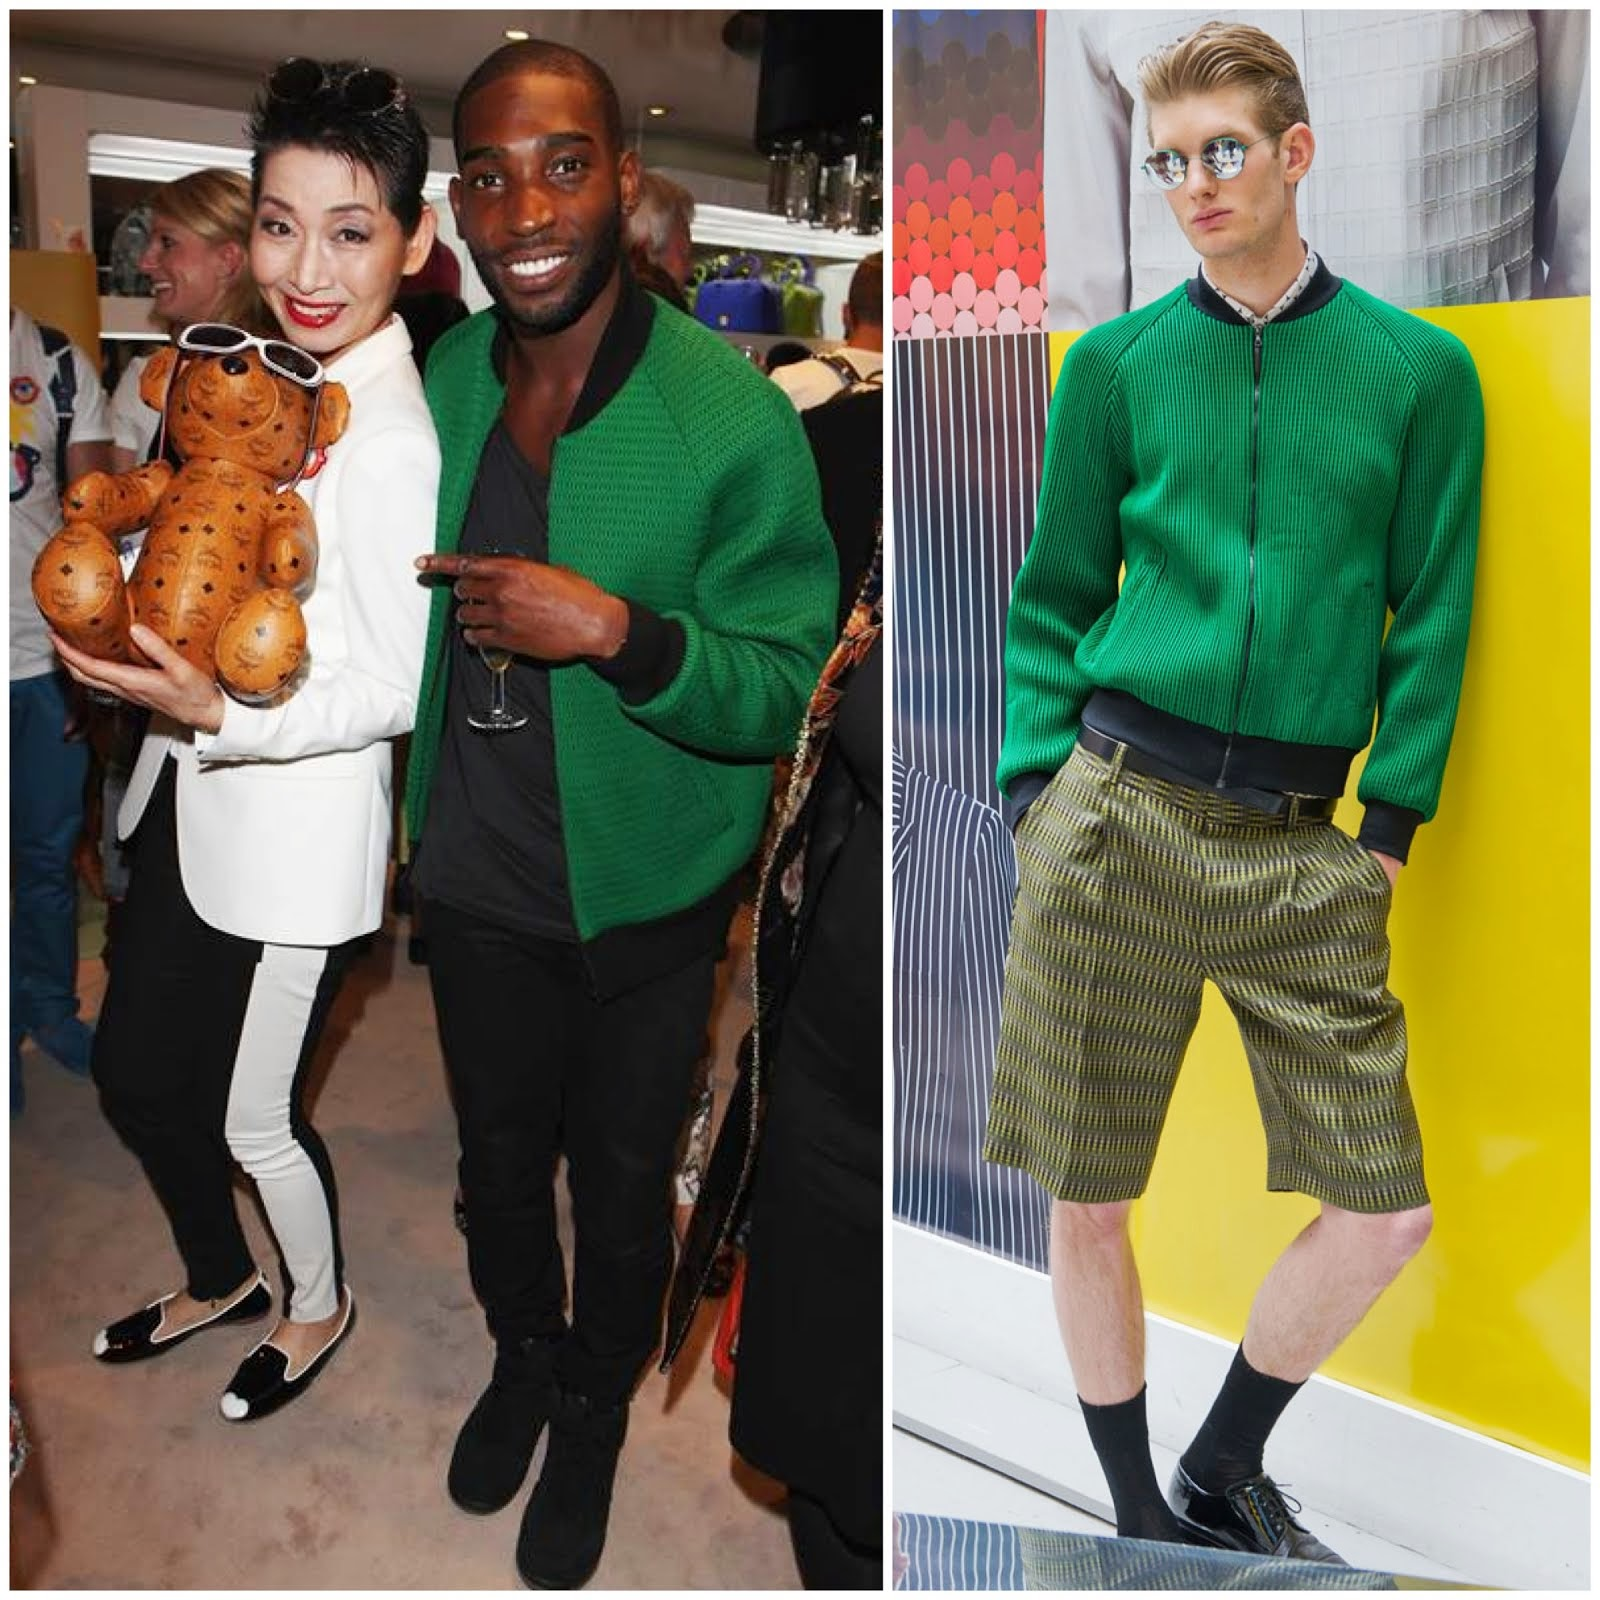 00O00 Menswear Blog: Tinie Tempah in Jonathan Saunders - MCM x Craig & Karl Eyes On The Horizon launch, London July 2013